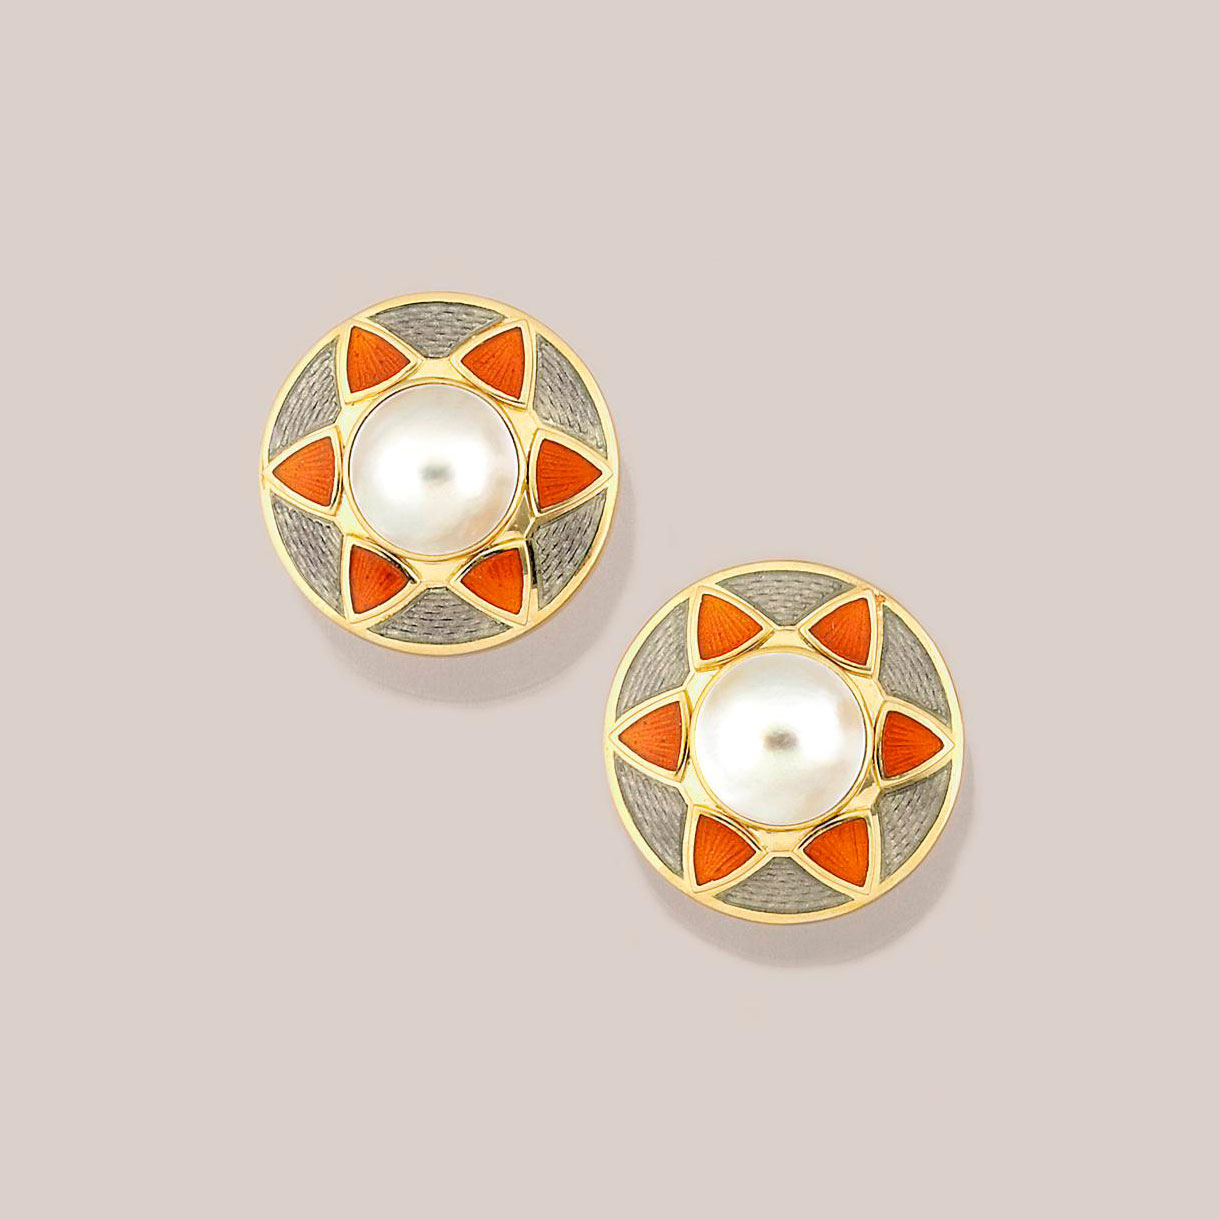 A pair of 18ct. gold, enamel and mabé cultured pearl earrings, by de Vroomen